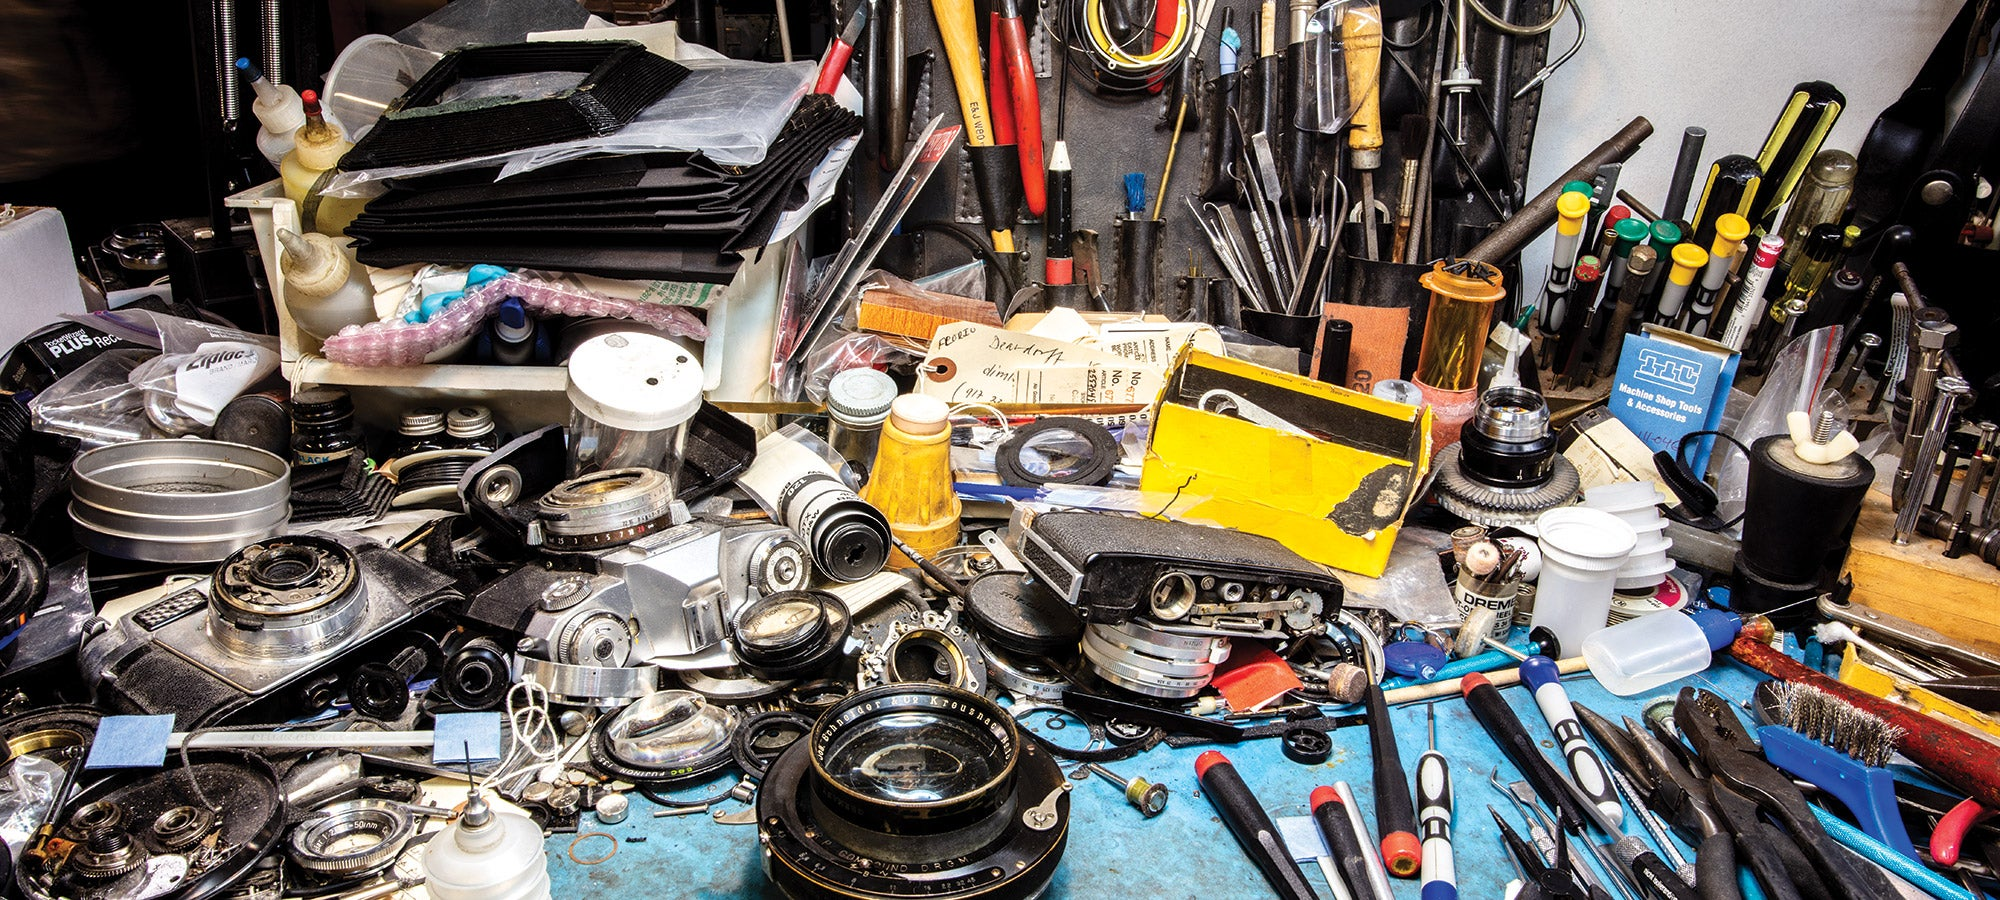 Inside New York City's vanishing community of repair shops